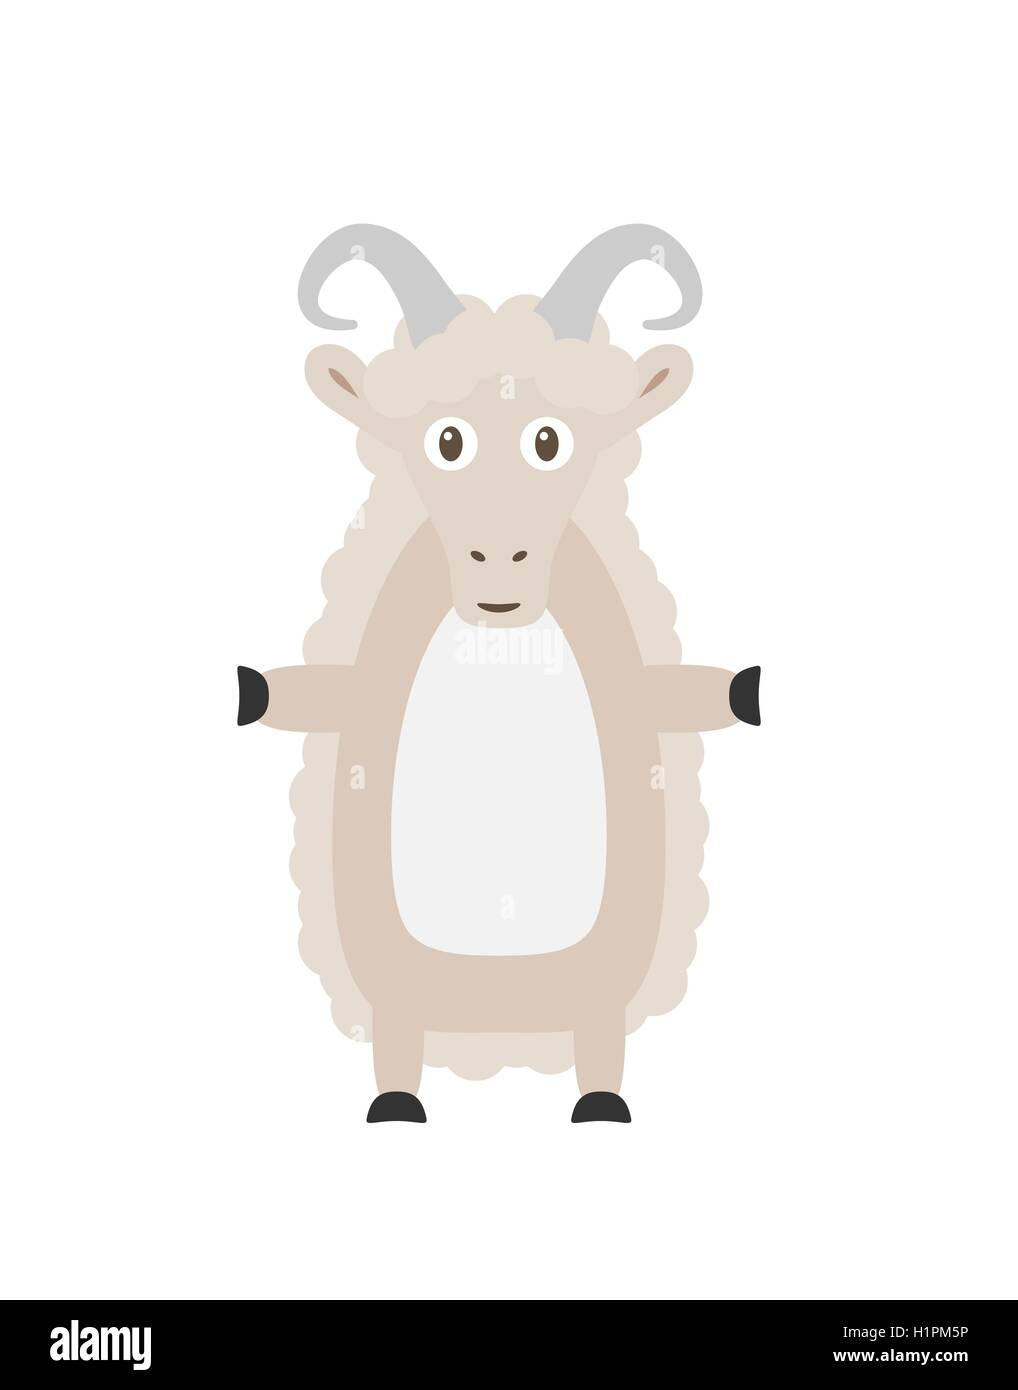 Funny sheep character Stock Vector